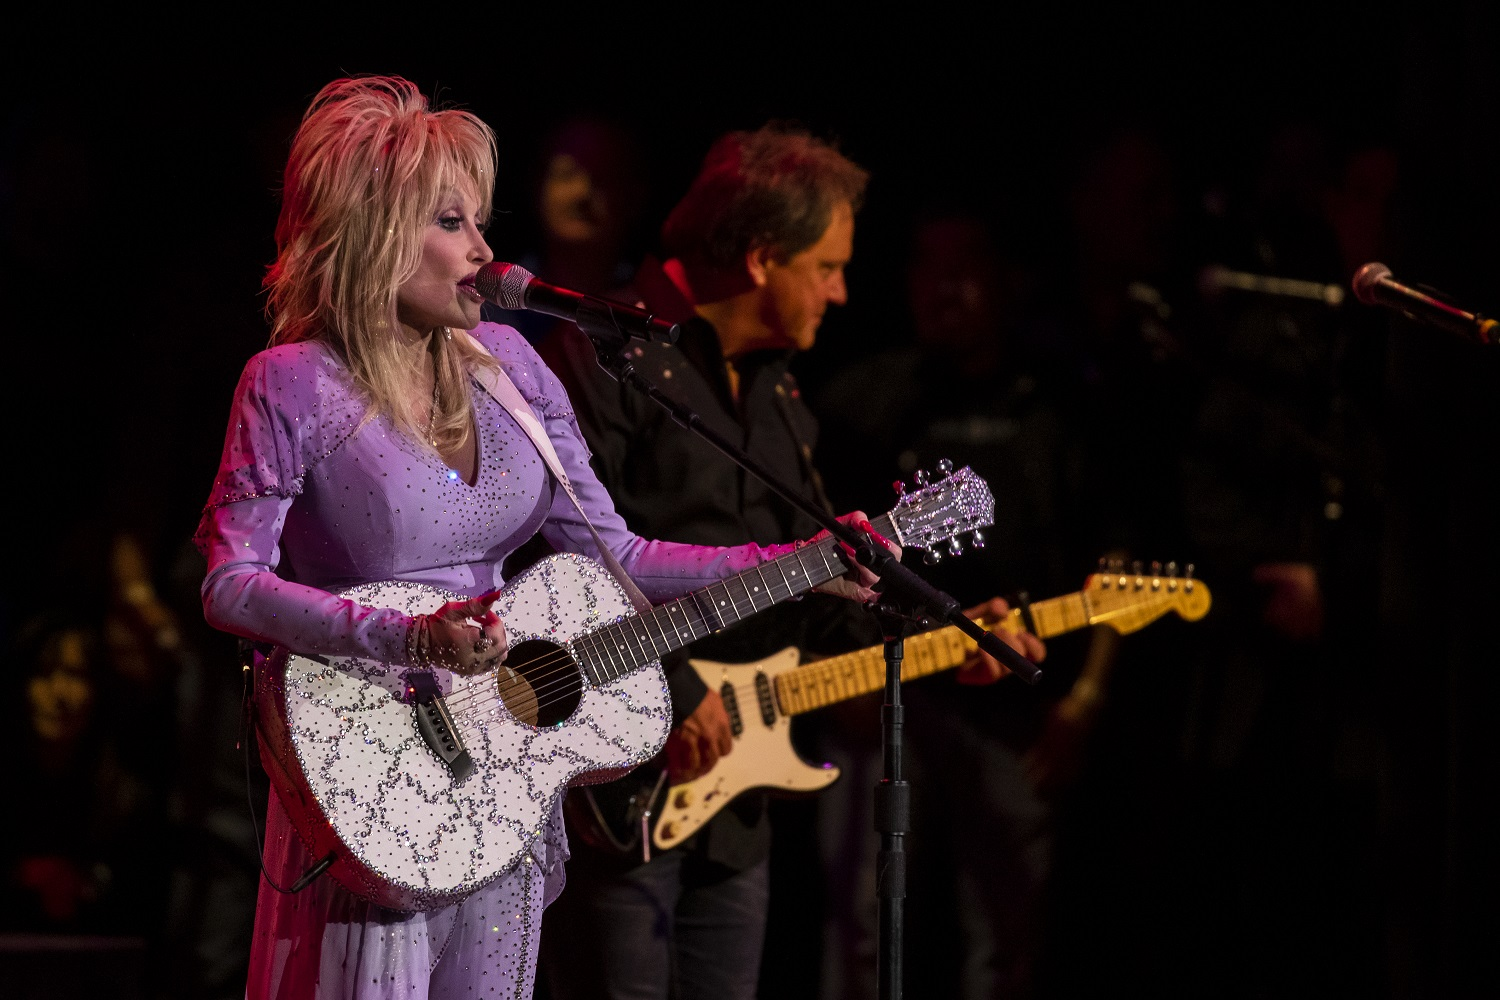 Dolly Parton performs during The Gift Of Music Concert at Ryman Auditorium on January 30, 2020 in Nashville, Tennessee.